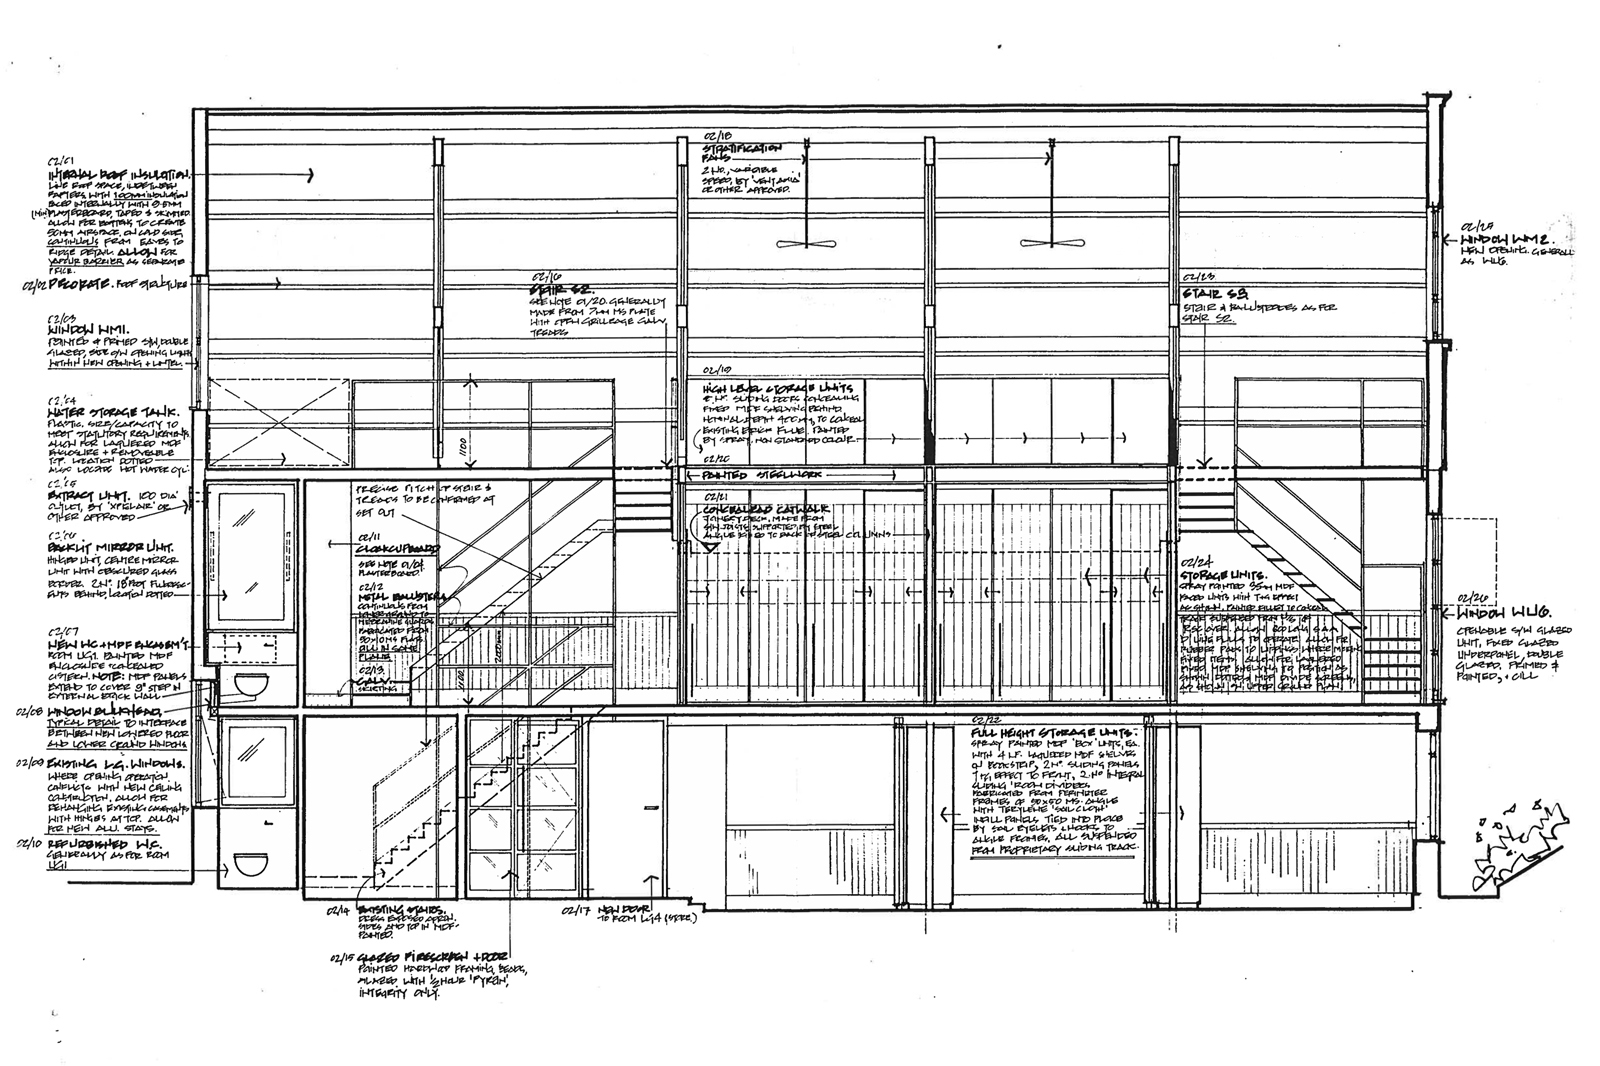 section drawing showing animation studio